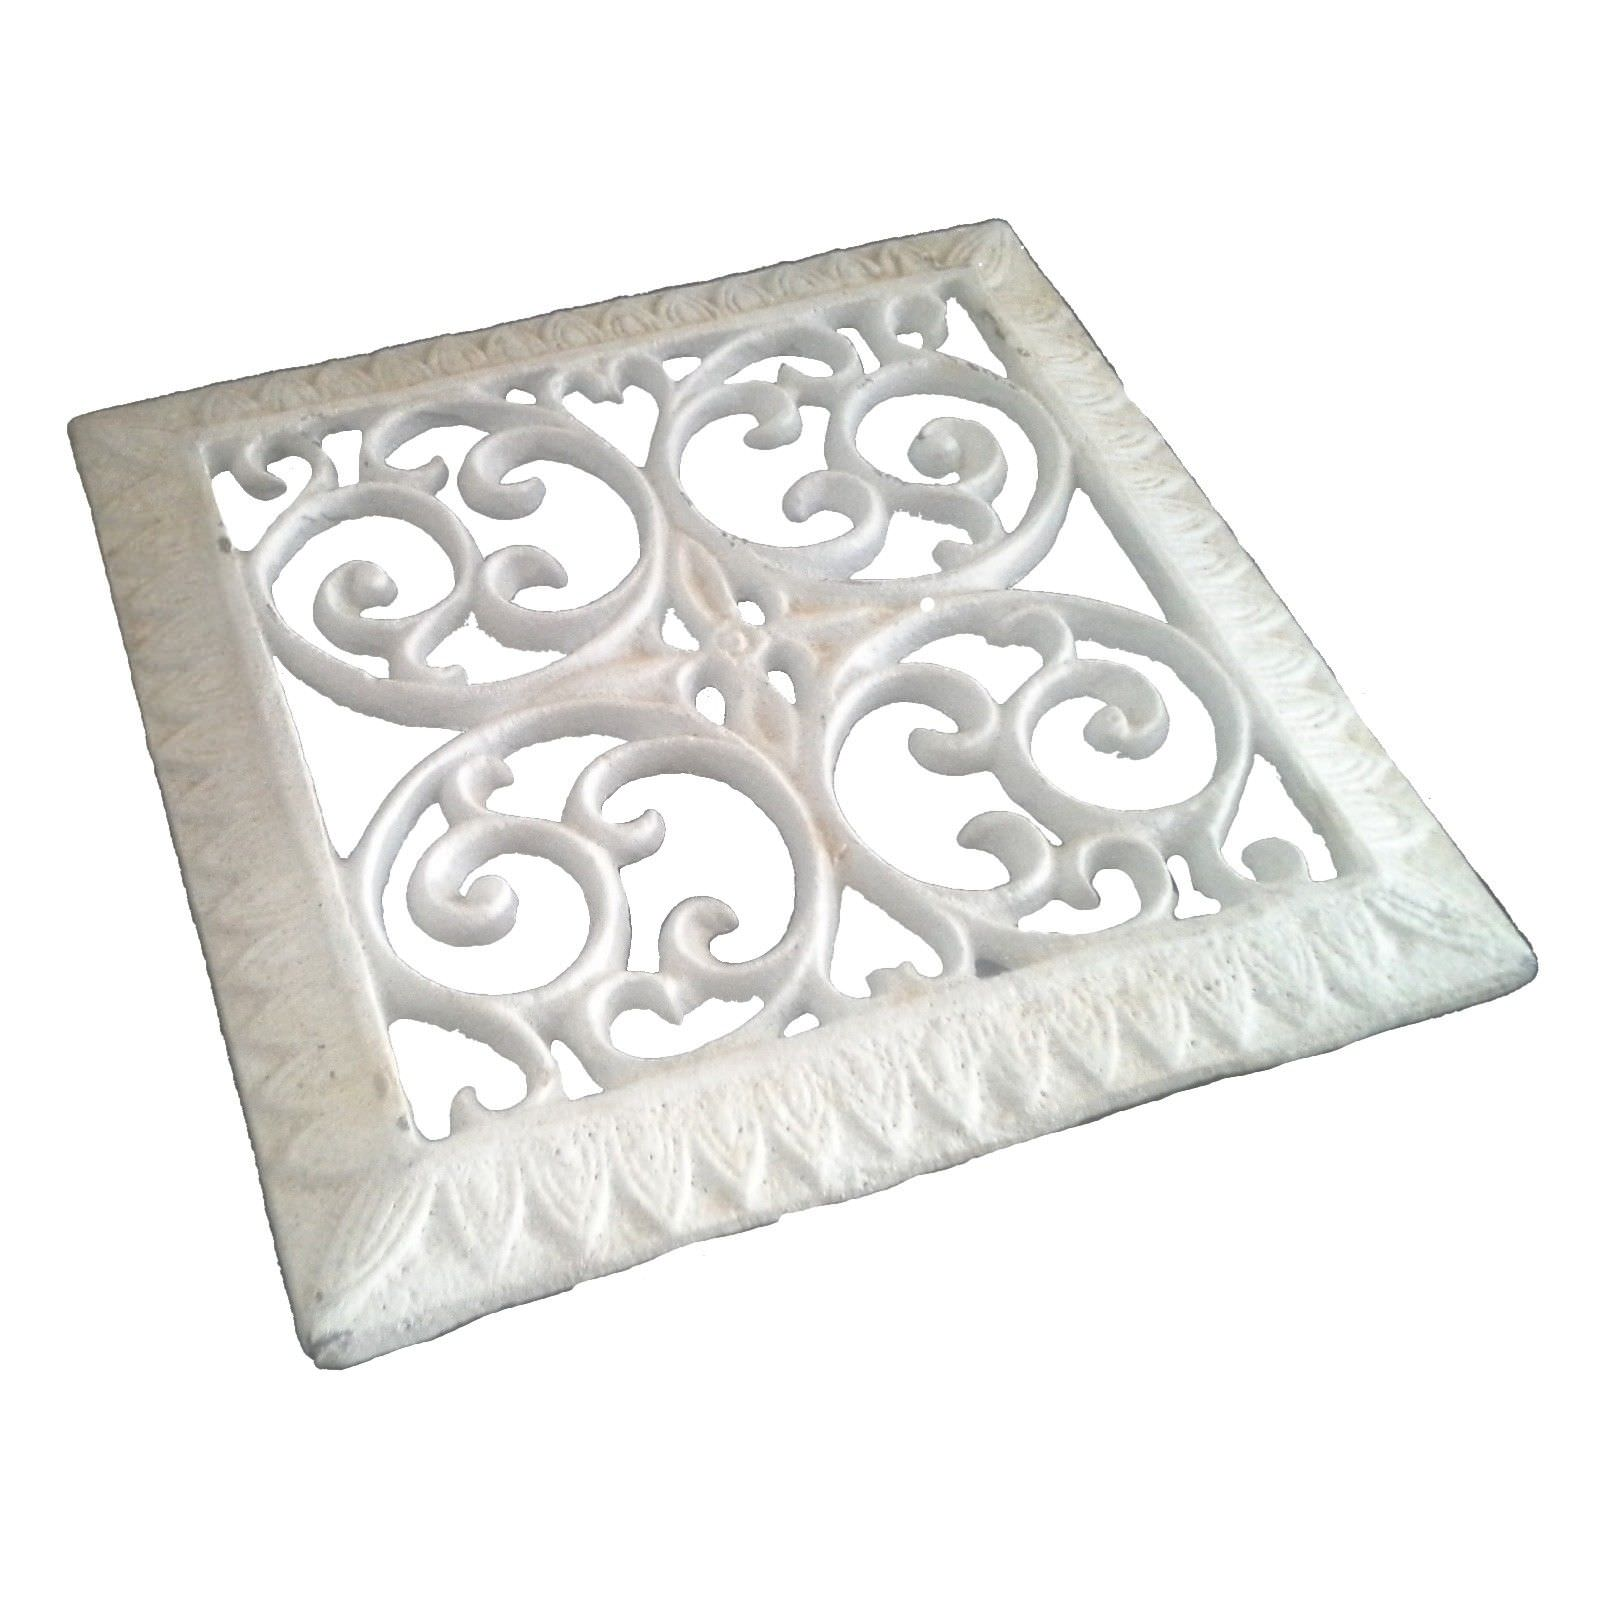 Agnes Cast Iron Square Trivet, Antique White